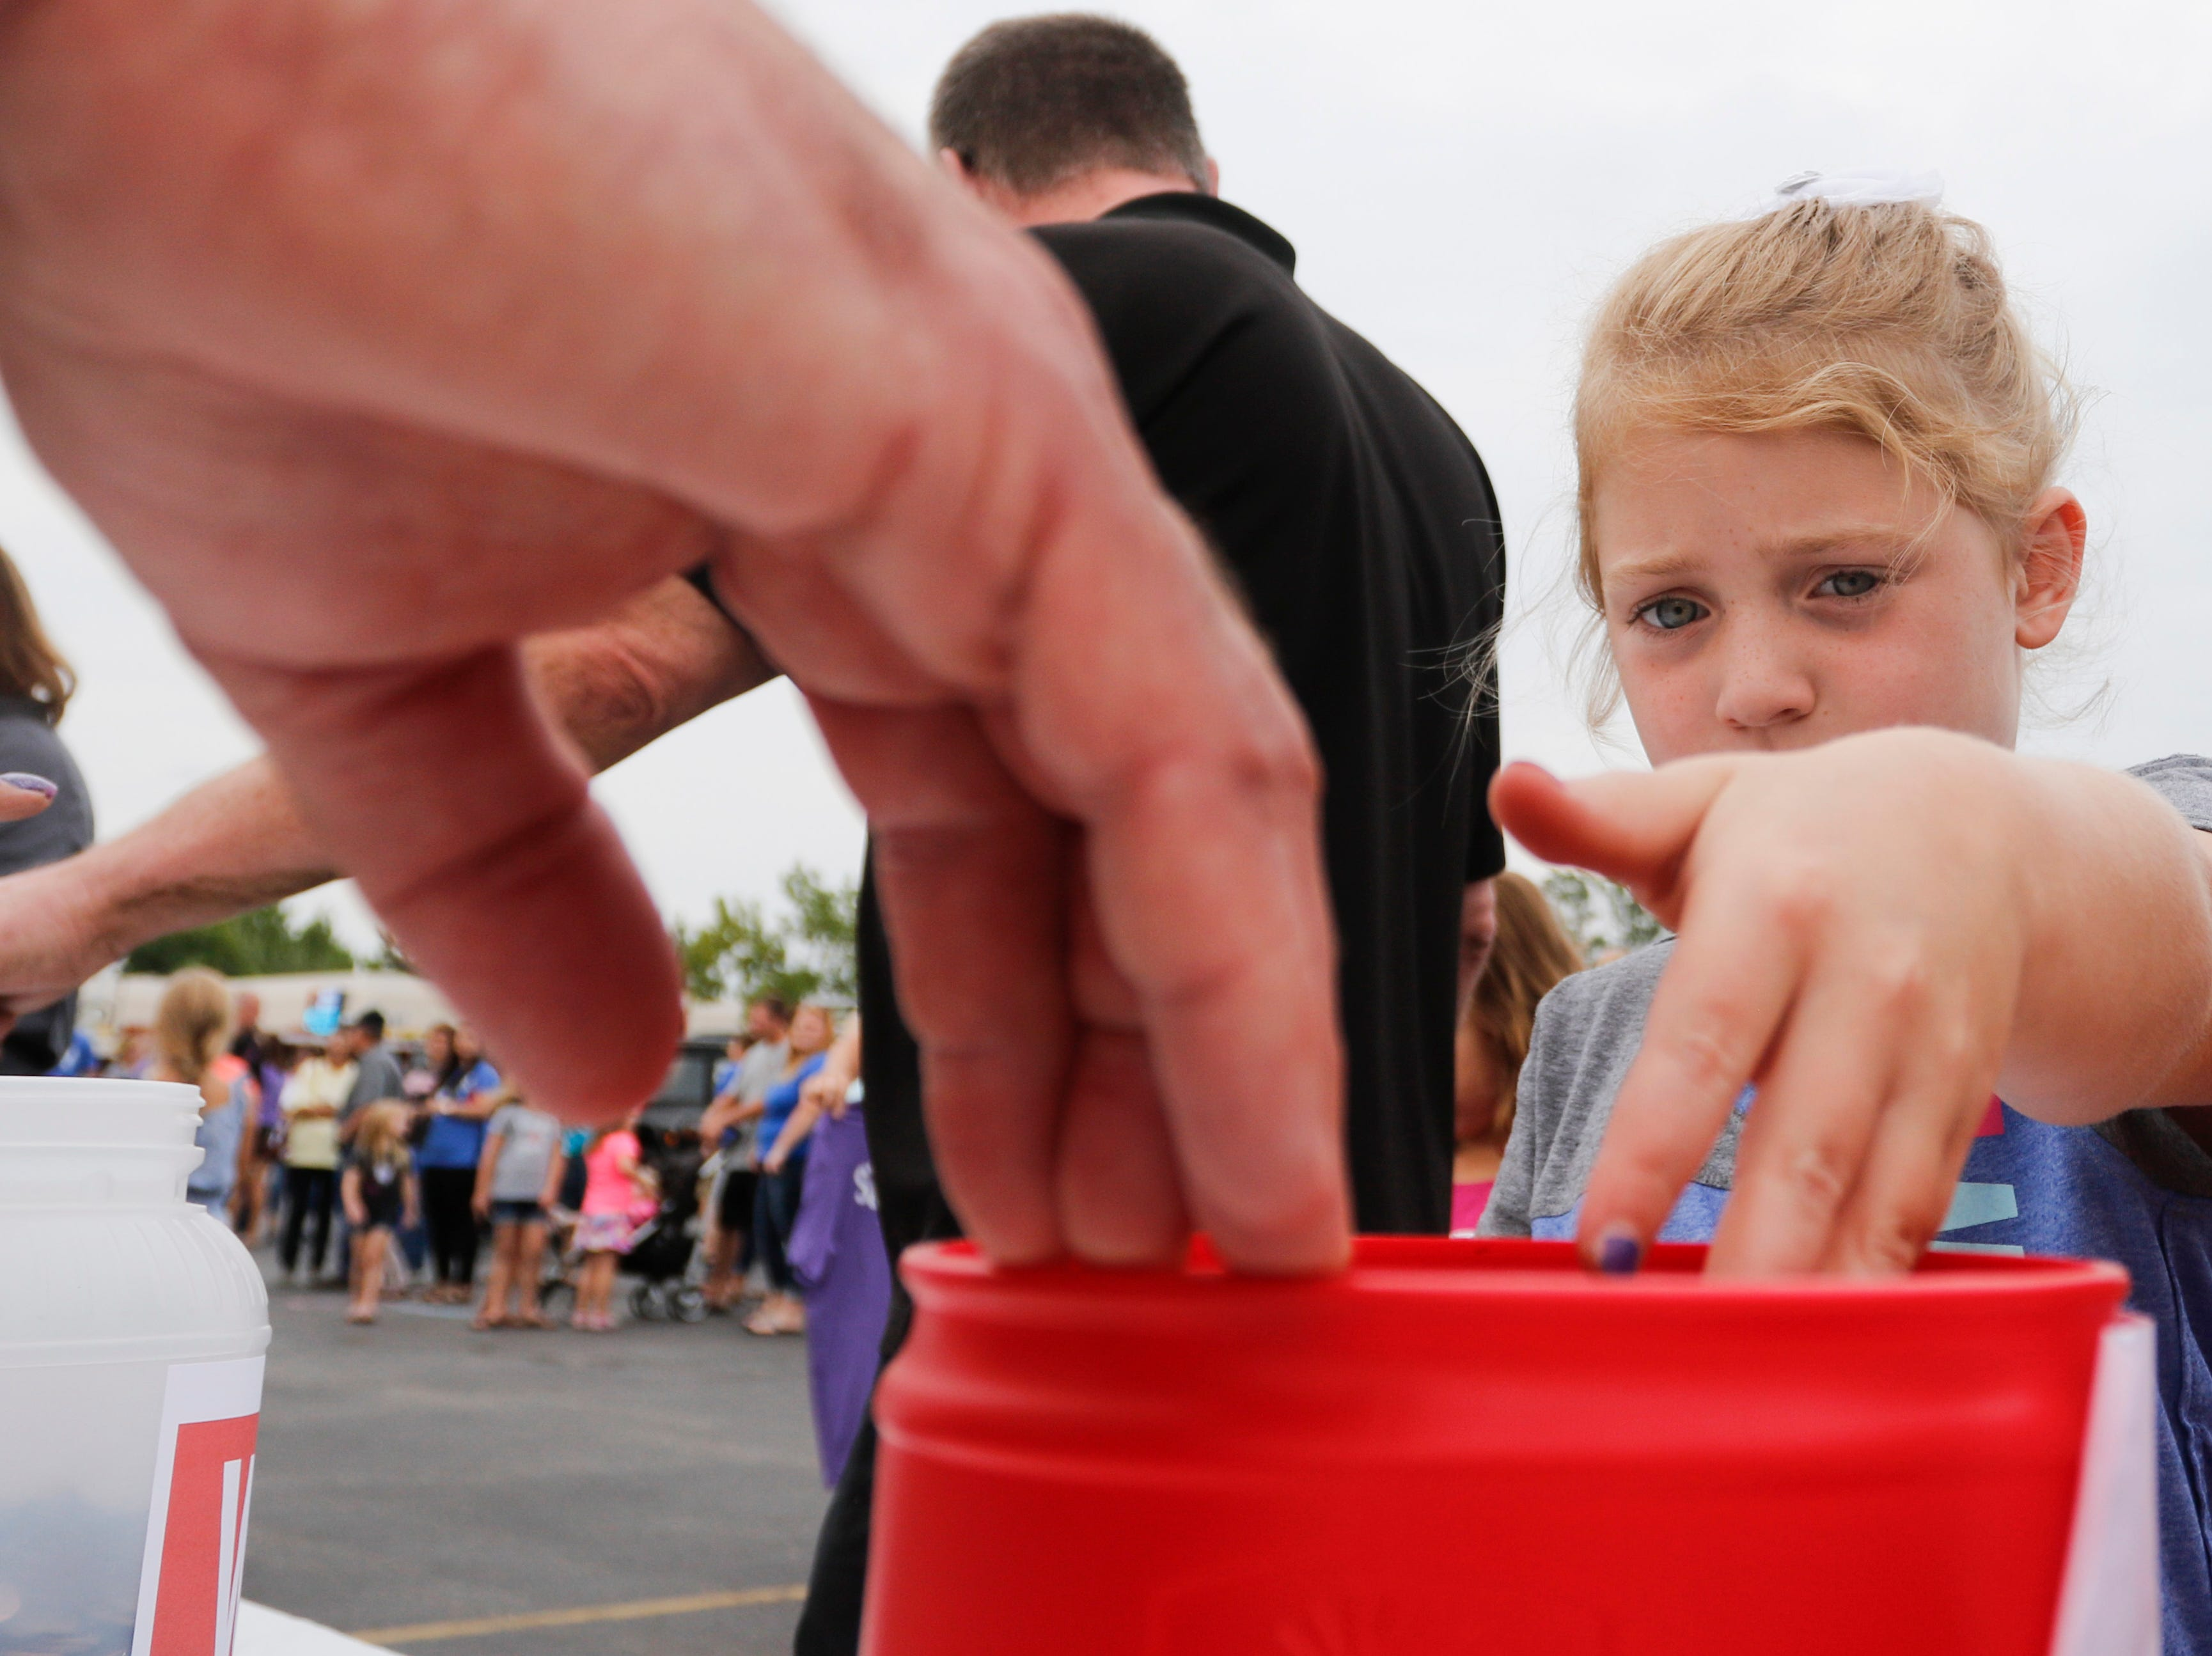 A girl donates change to the penny war during the National Night Out event put on by the Wisconsin Rapids Police Department in the Crossview Church parking lot in Wisconsin Rapids Tuesday, August 7, 2018. Participants in the penny war chose to place their change in a container for the Wisconsin Rapids Police Department, Wisconsin Rapids Fire Department and Wood County Sheriff's Department, raising money for the Fly High Memorial Playground.